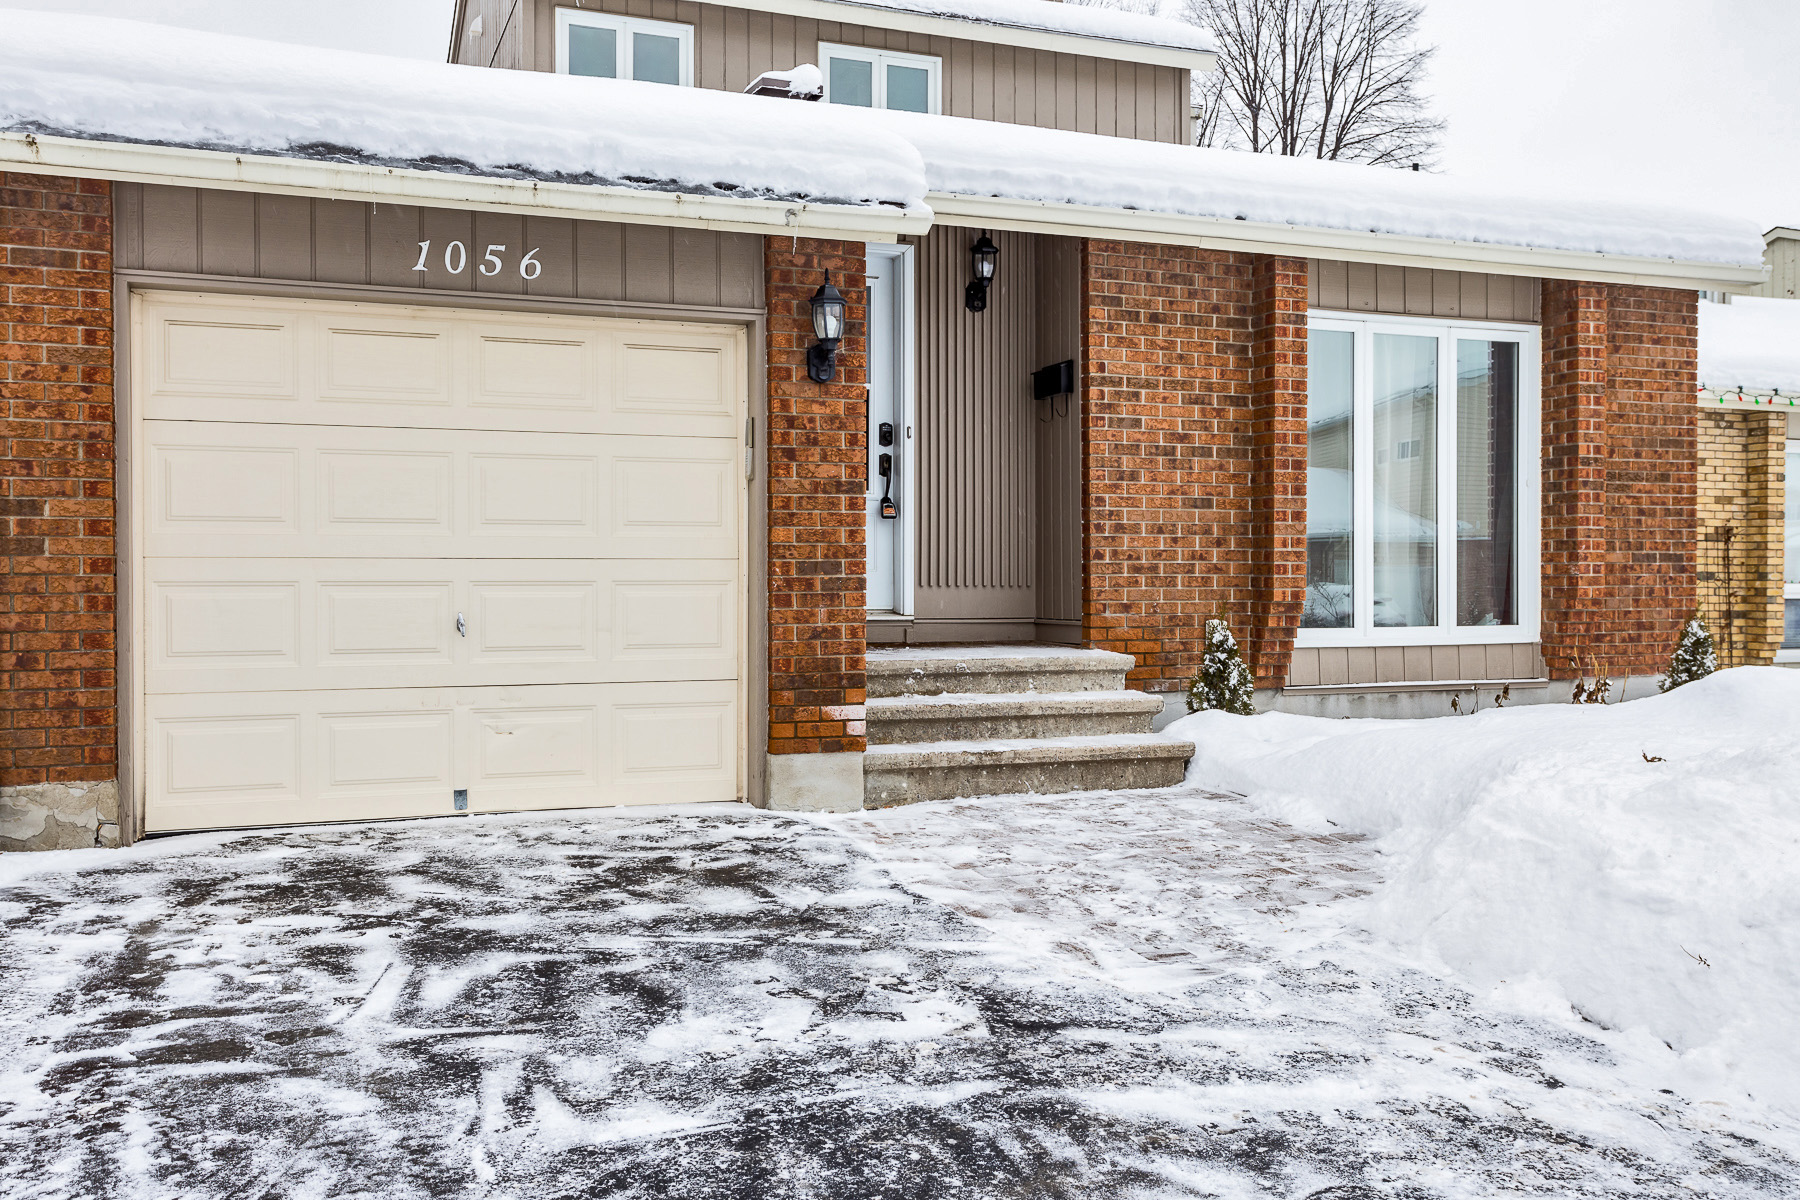 Sold over asking price in orleans